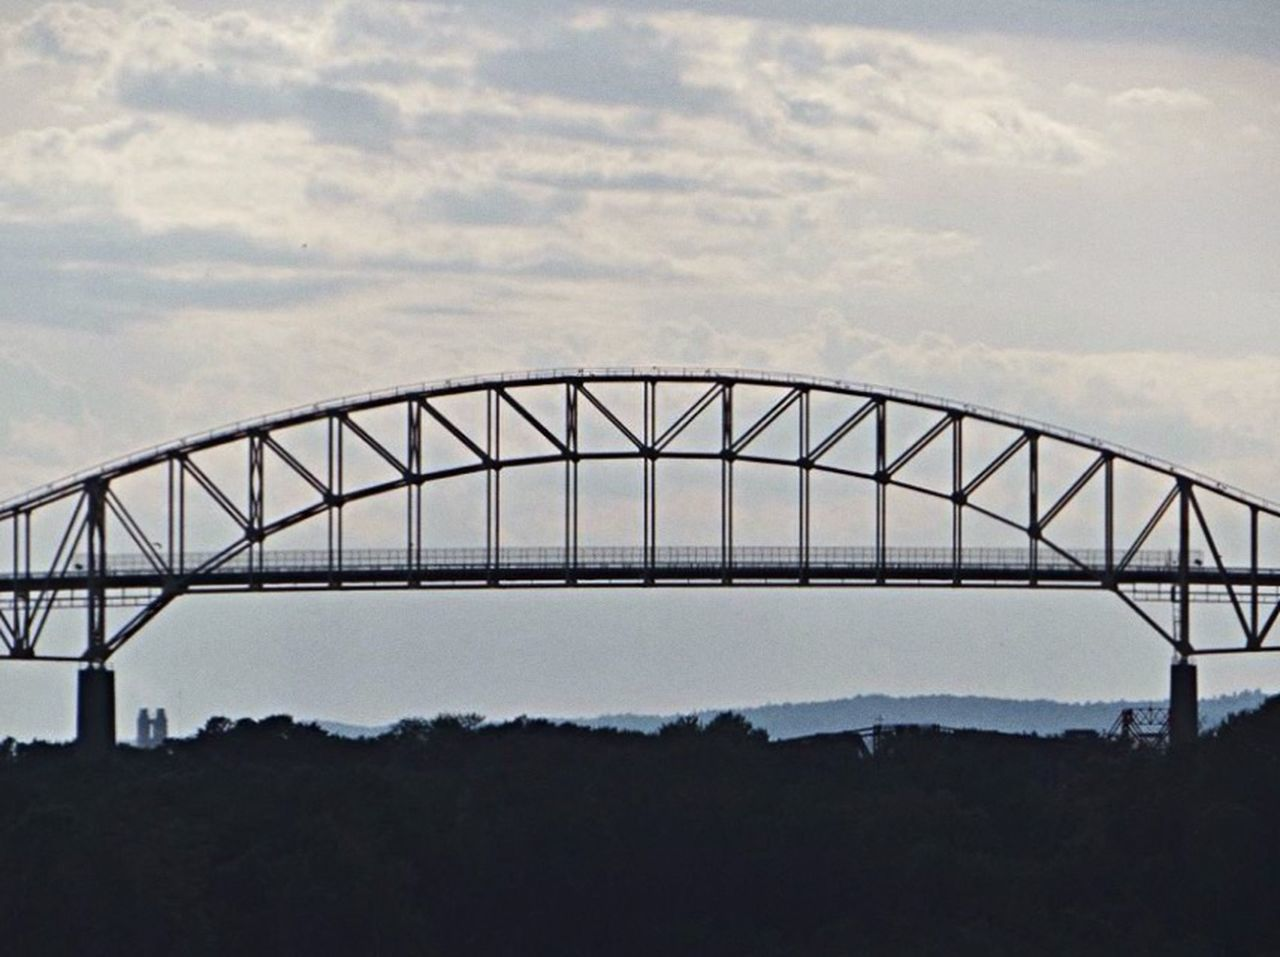 One of the Candian // American boarder bridges - located in Sault St Marie. Cityscapes Simplicity Nature Discover Your City Beautiful This Week On Eyeem Aritechture Buildings OpenEdit Minimalism